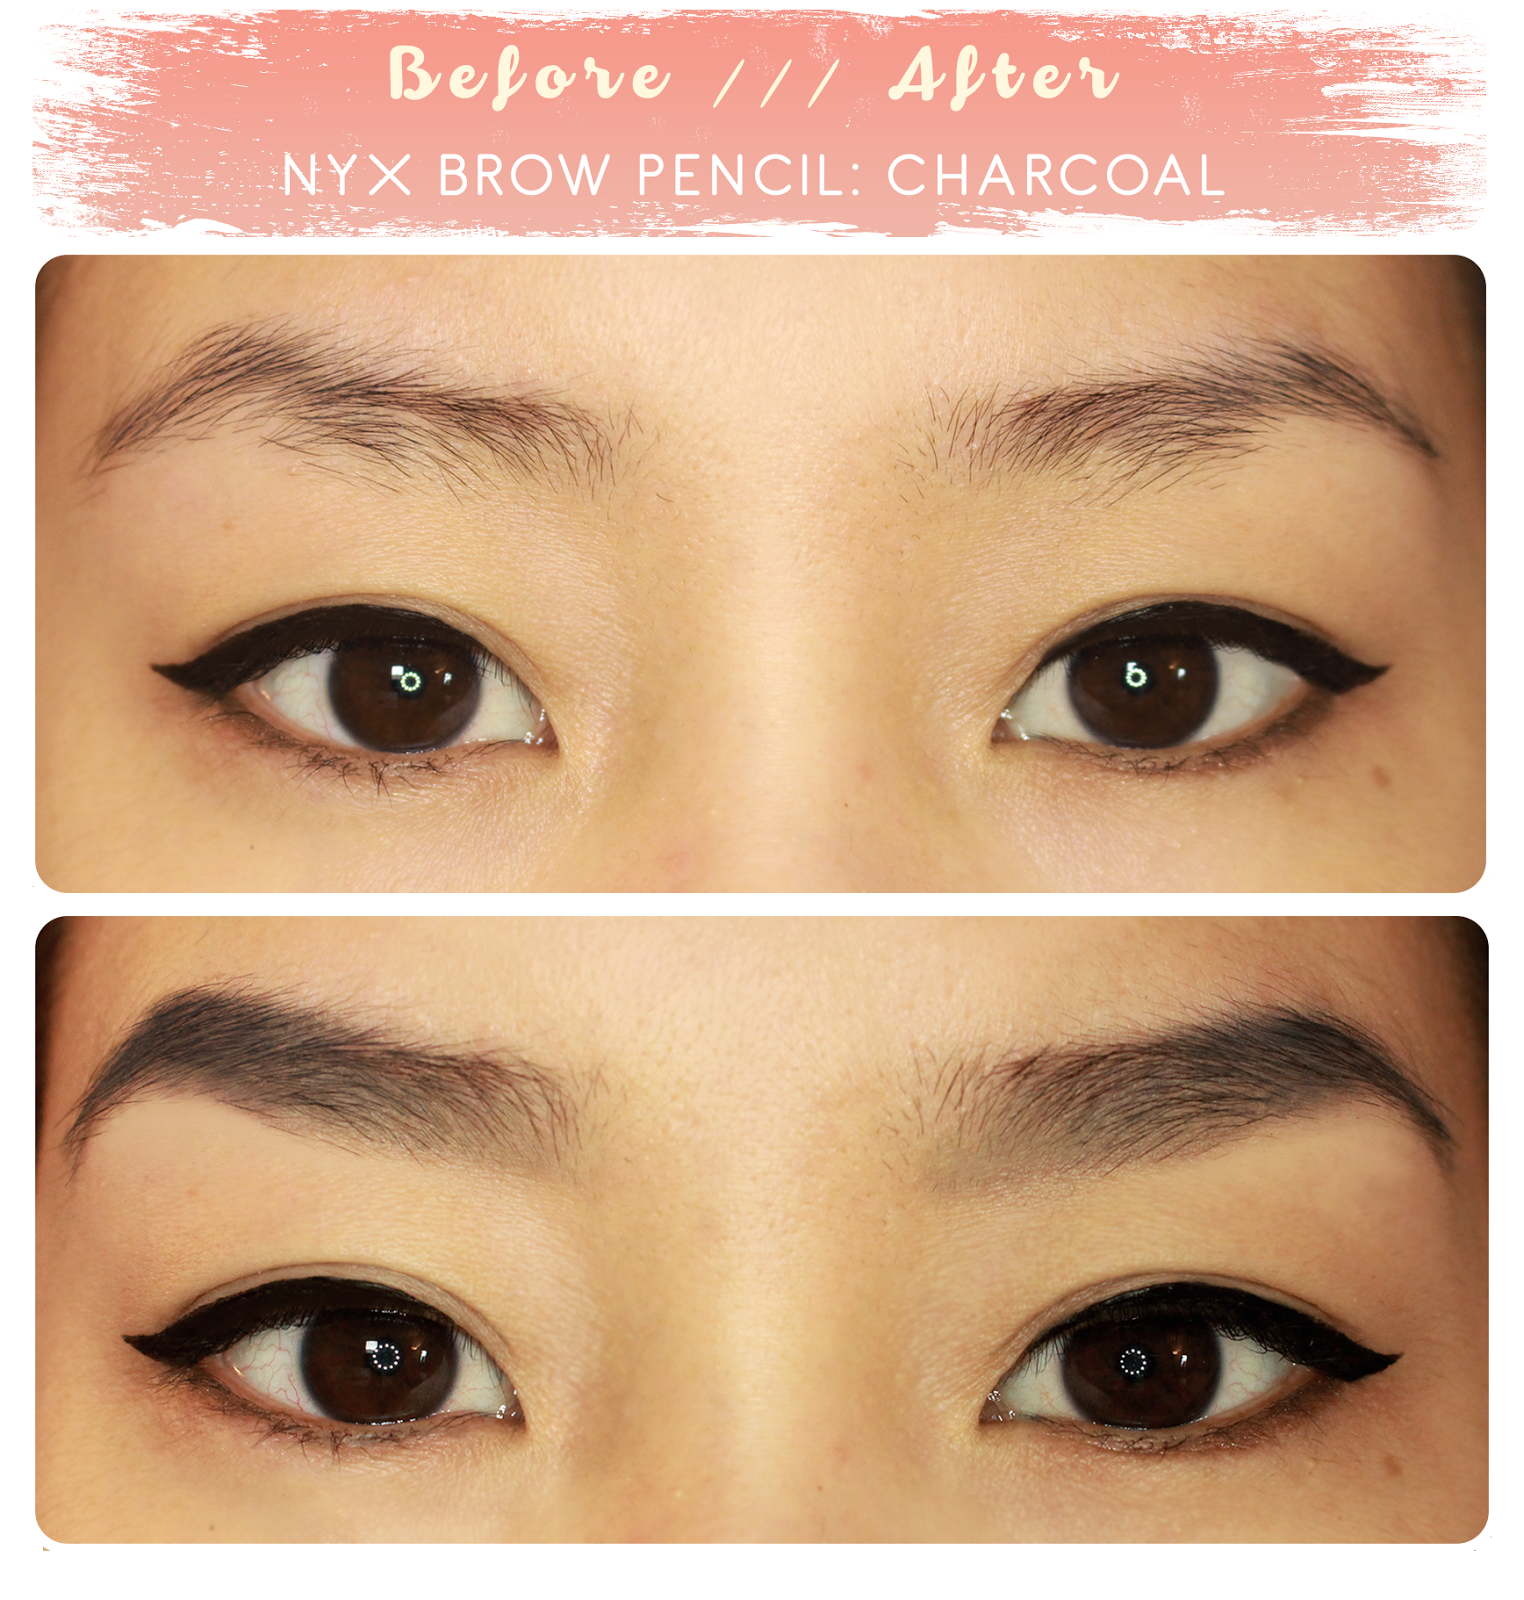 """Brow before & after NYX eyebrow pencil in """"charcoal"""" 